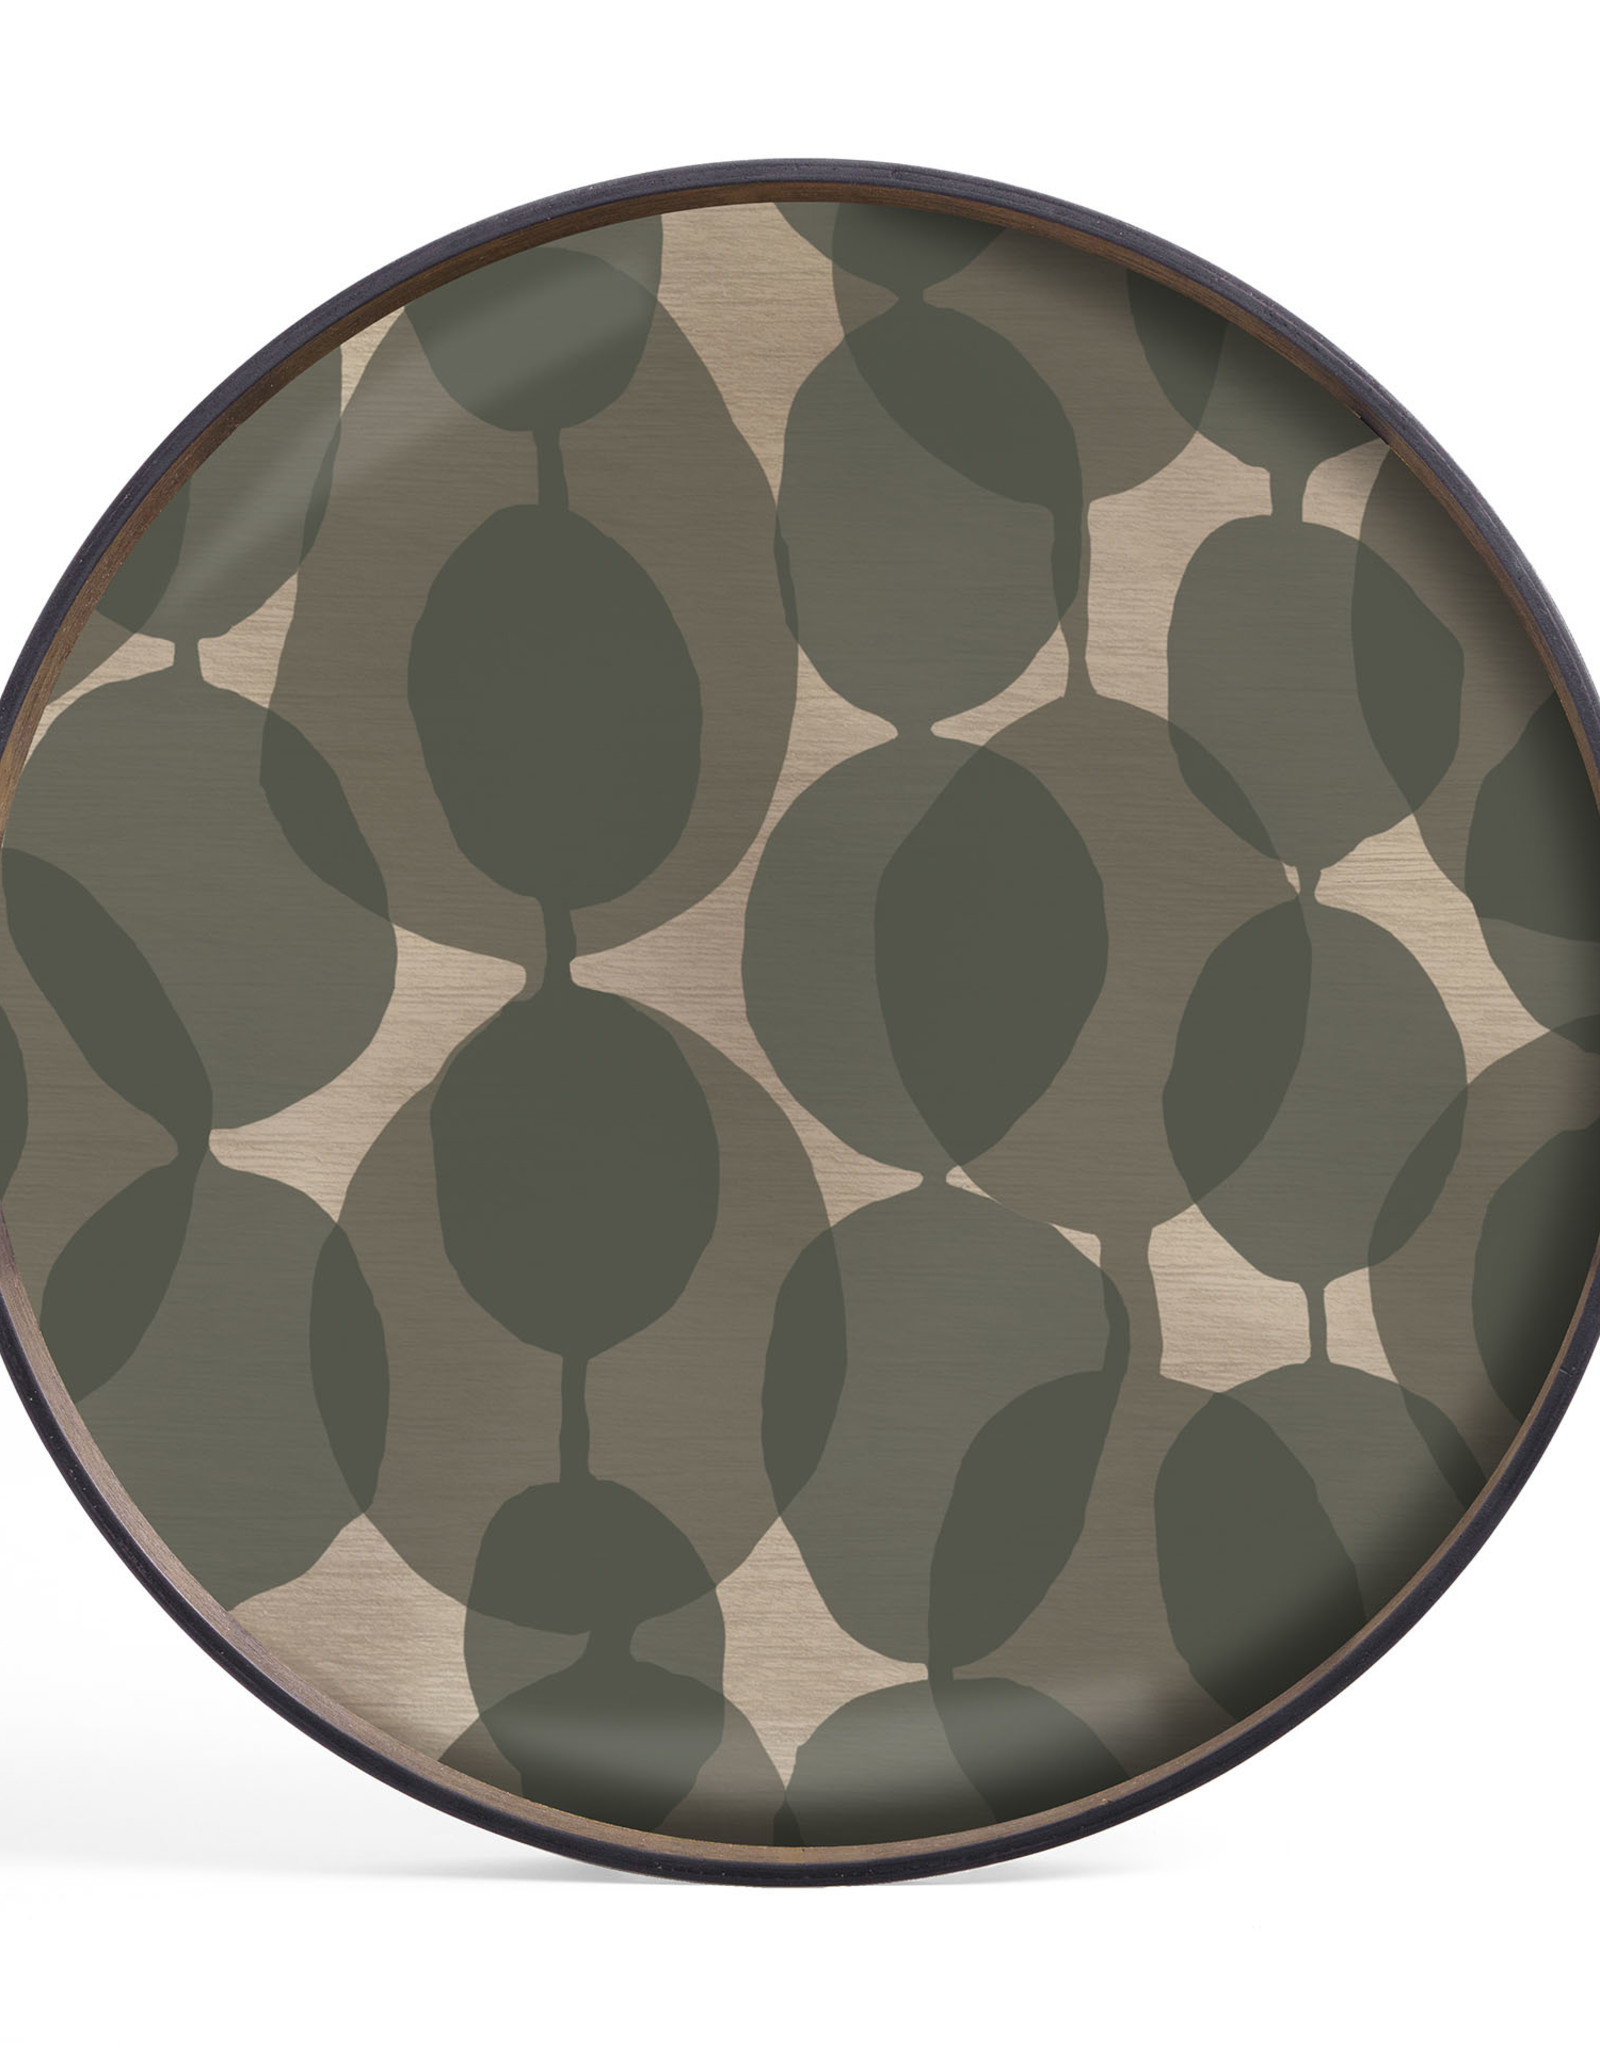 Connected Dots glass tray - round - S 19 x 19 x 2